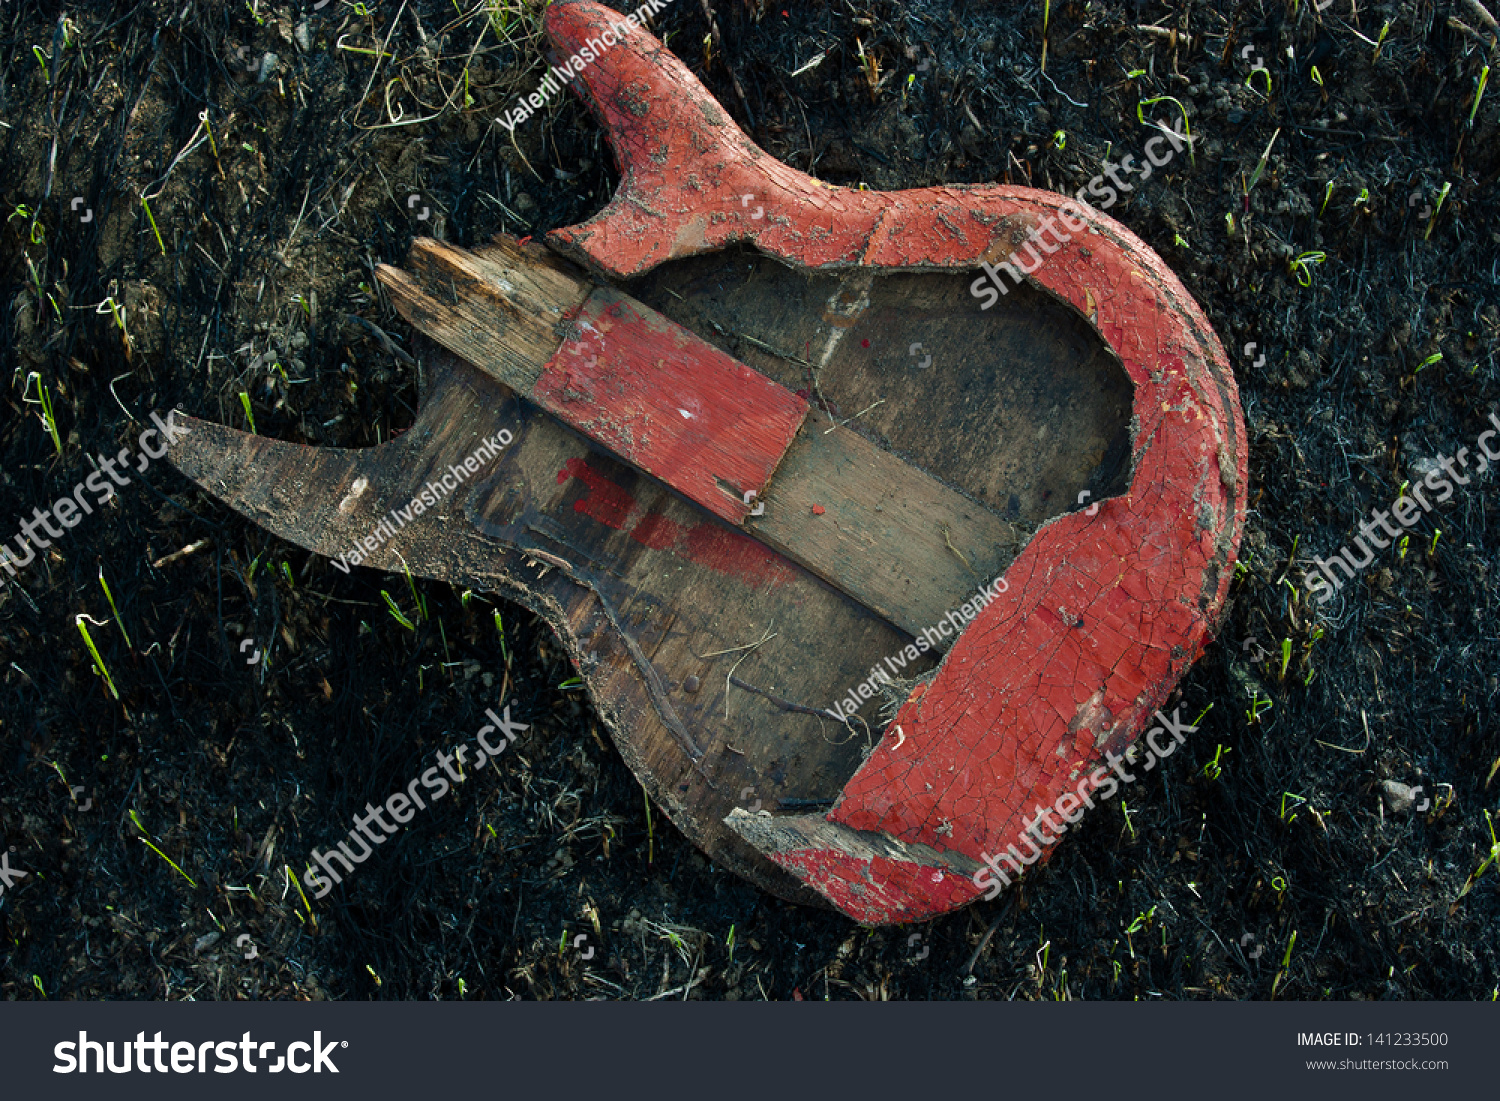 image electric guitar which was burned down on the burned ground stock photo 141233500. Black Bedroom Furniture Sets. Home Design Ideas